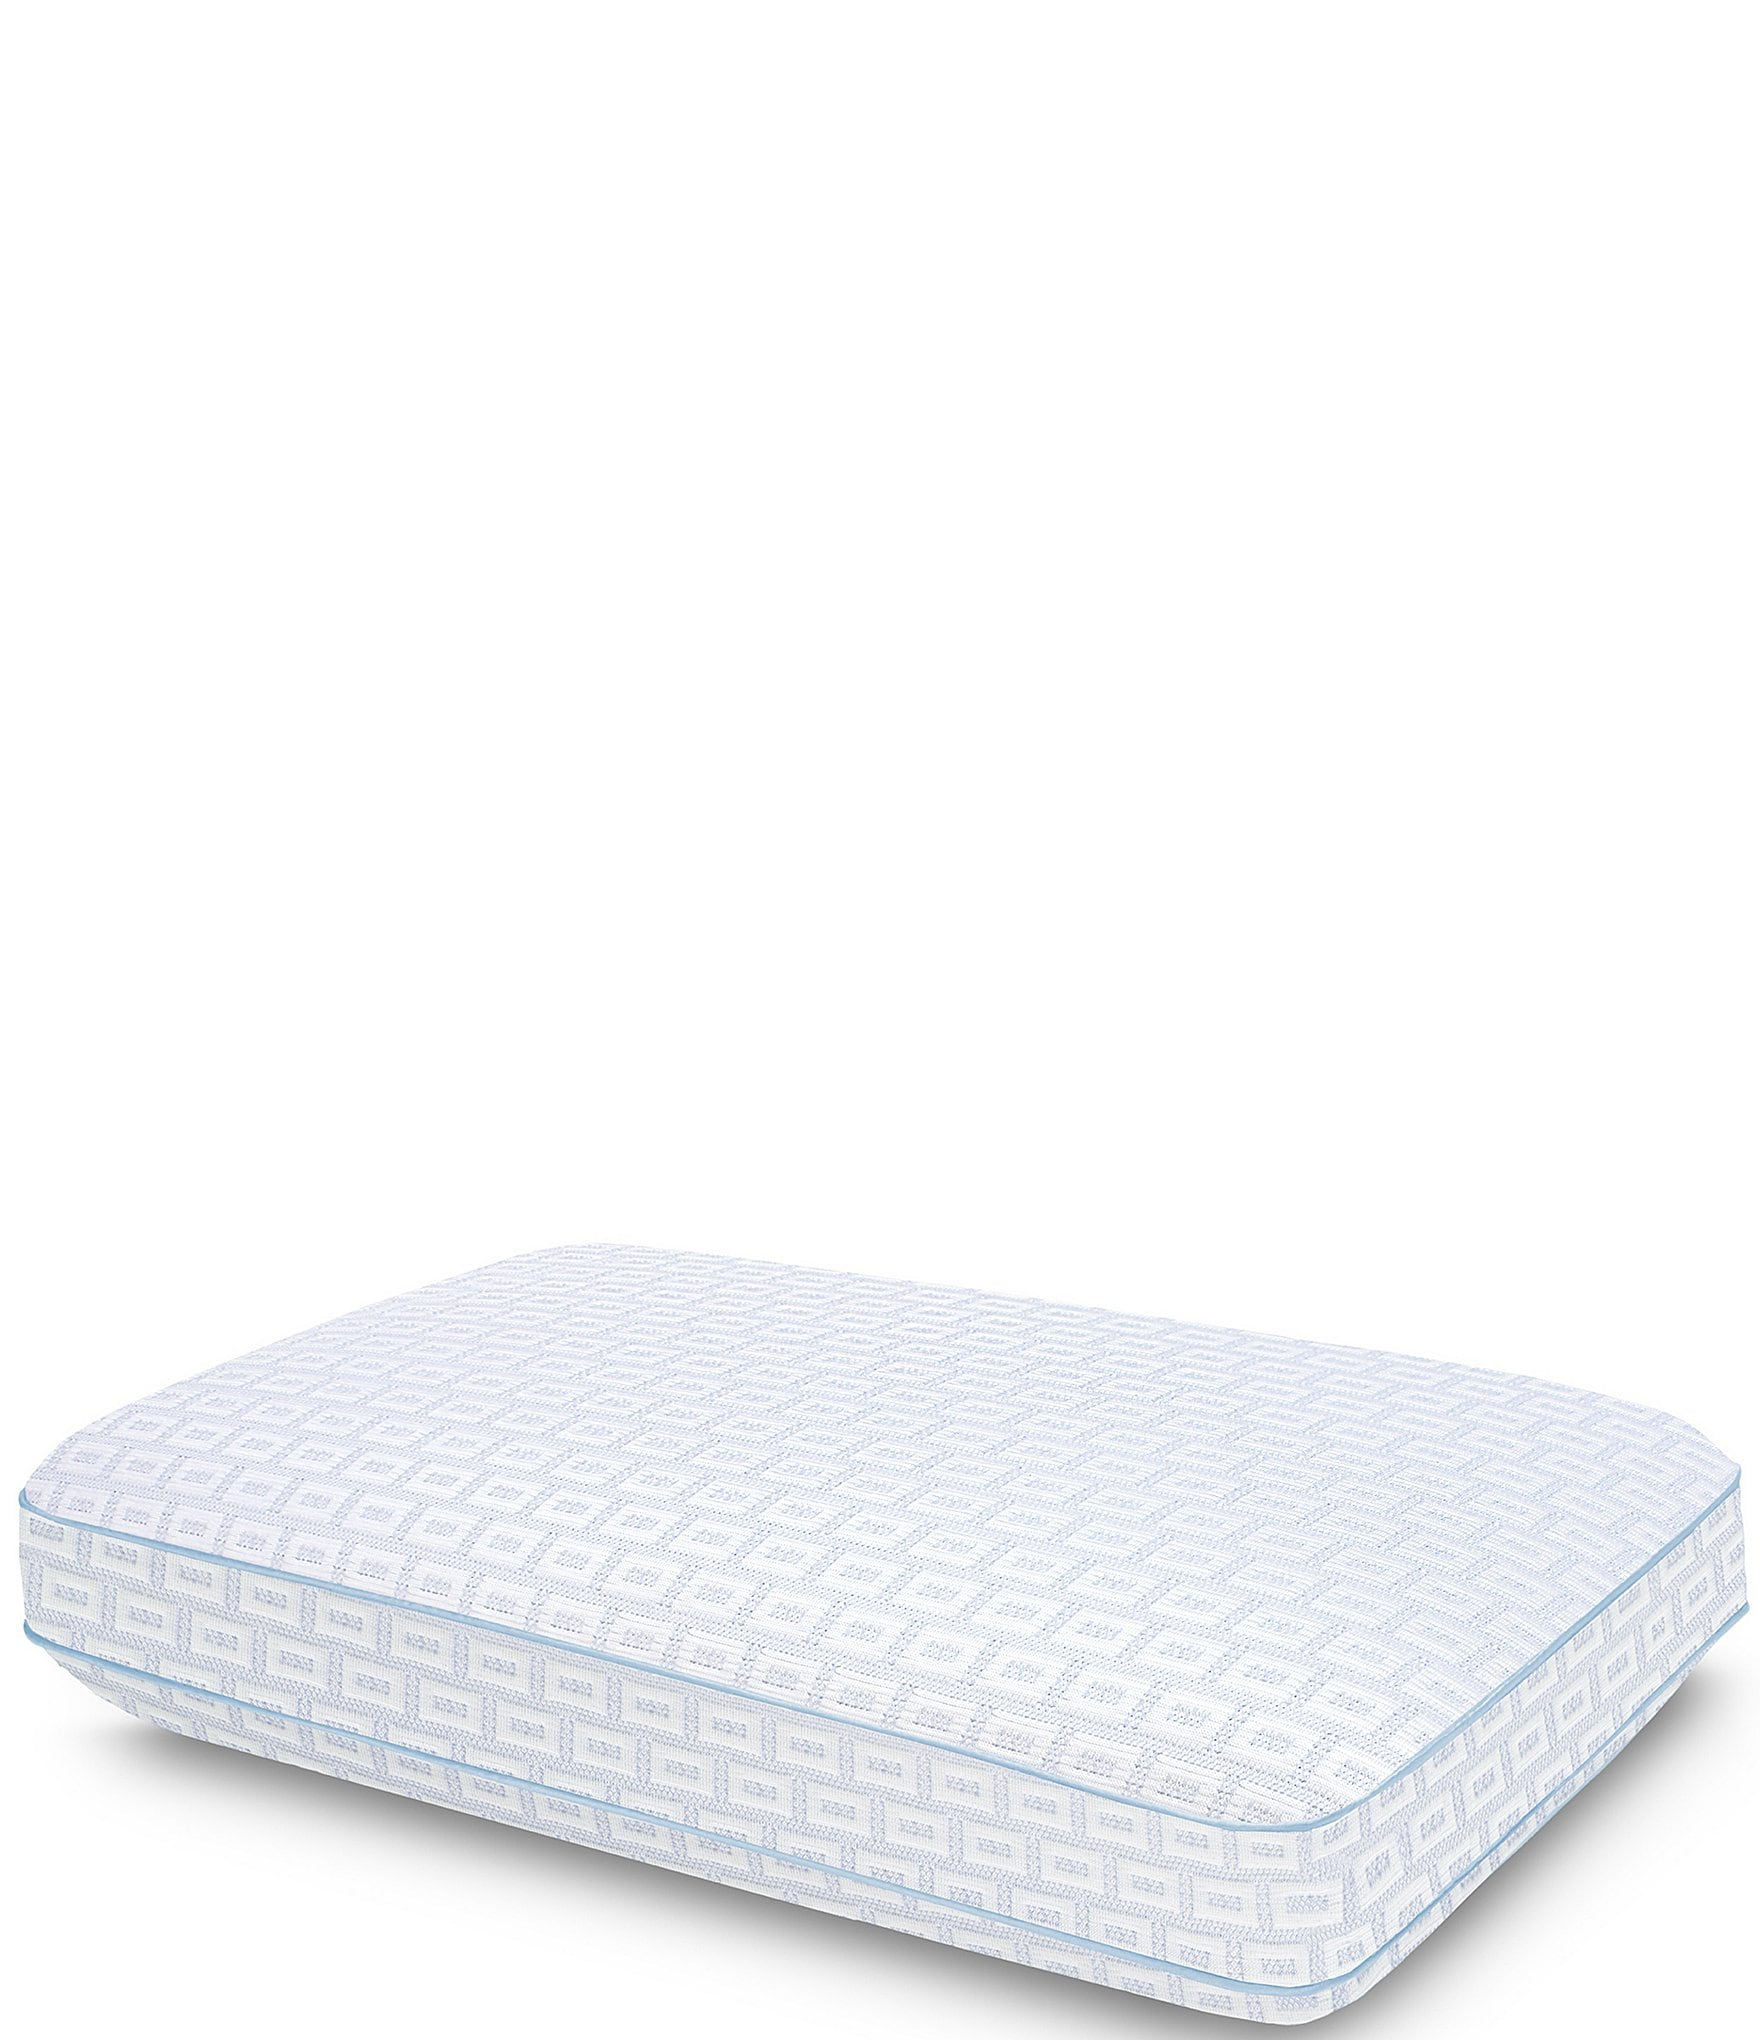 Gel Infused Memory Foam Pillow Sensorpedic Sensorcool Gel Infused Elite Cooling Memory Foam Pillow Dillard S